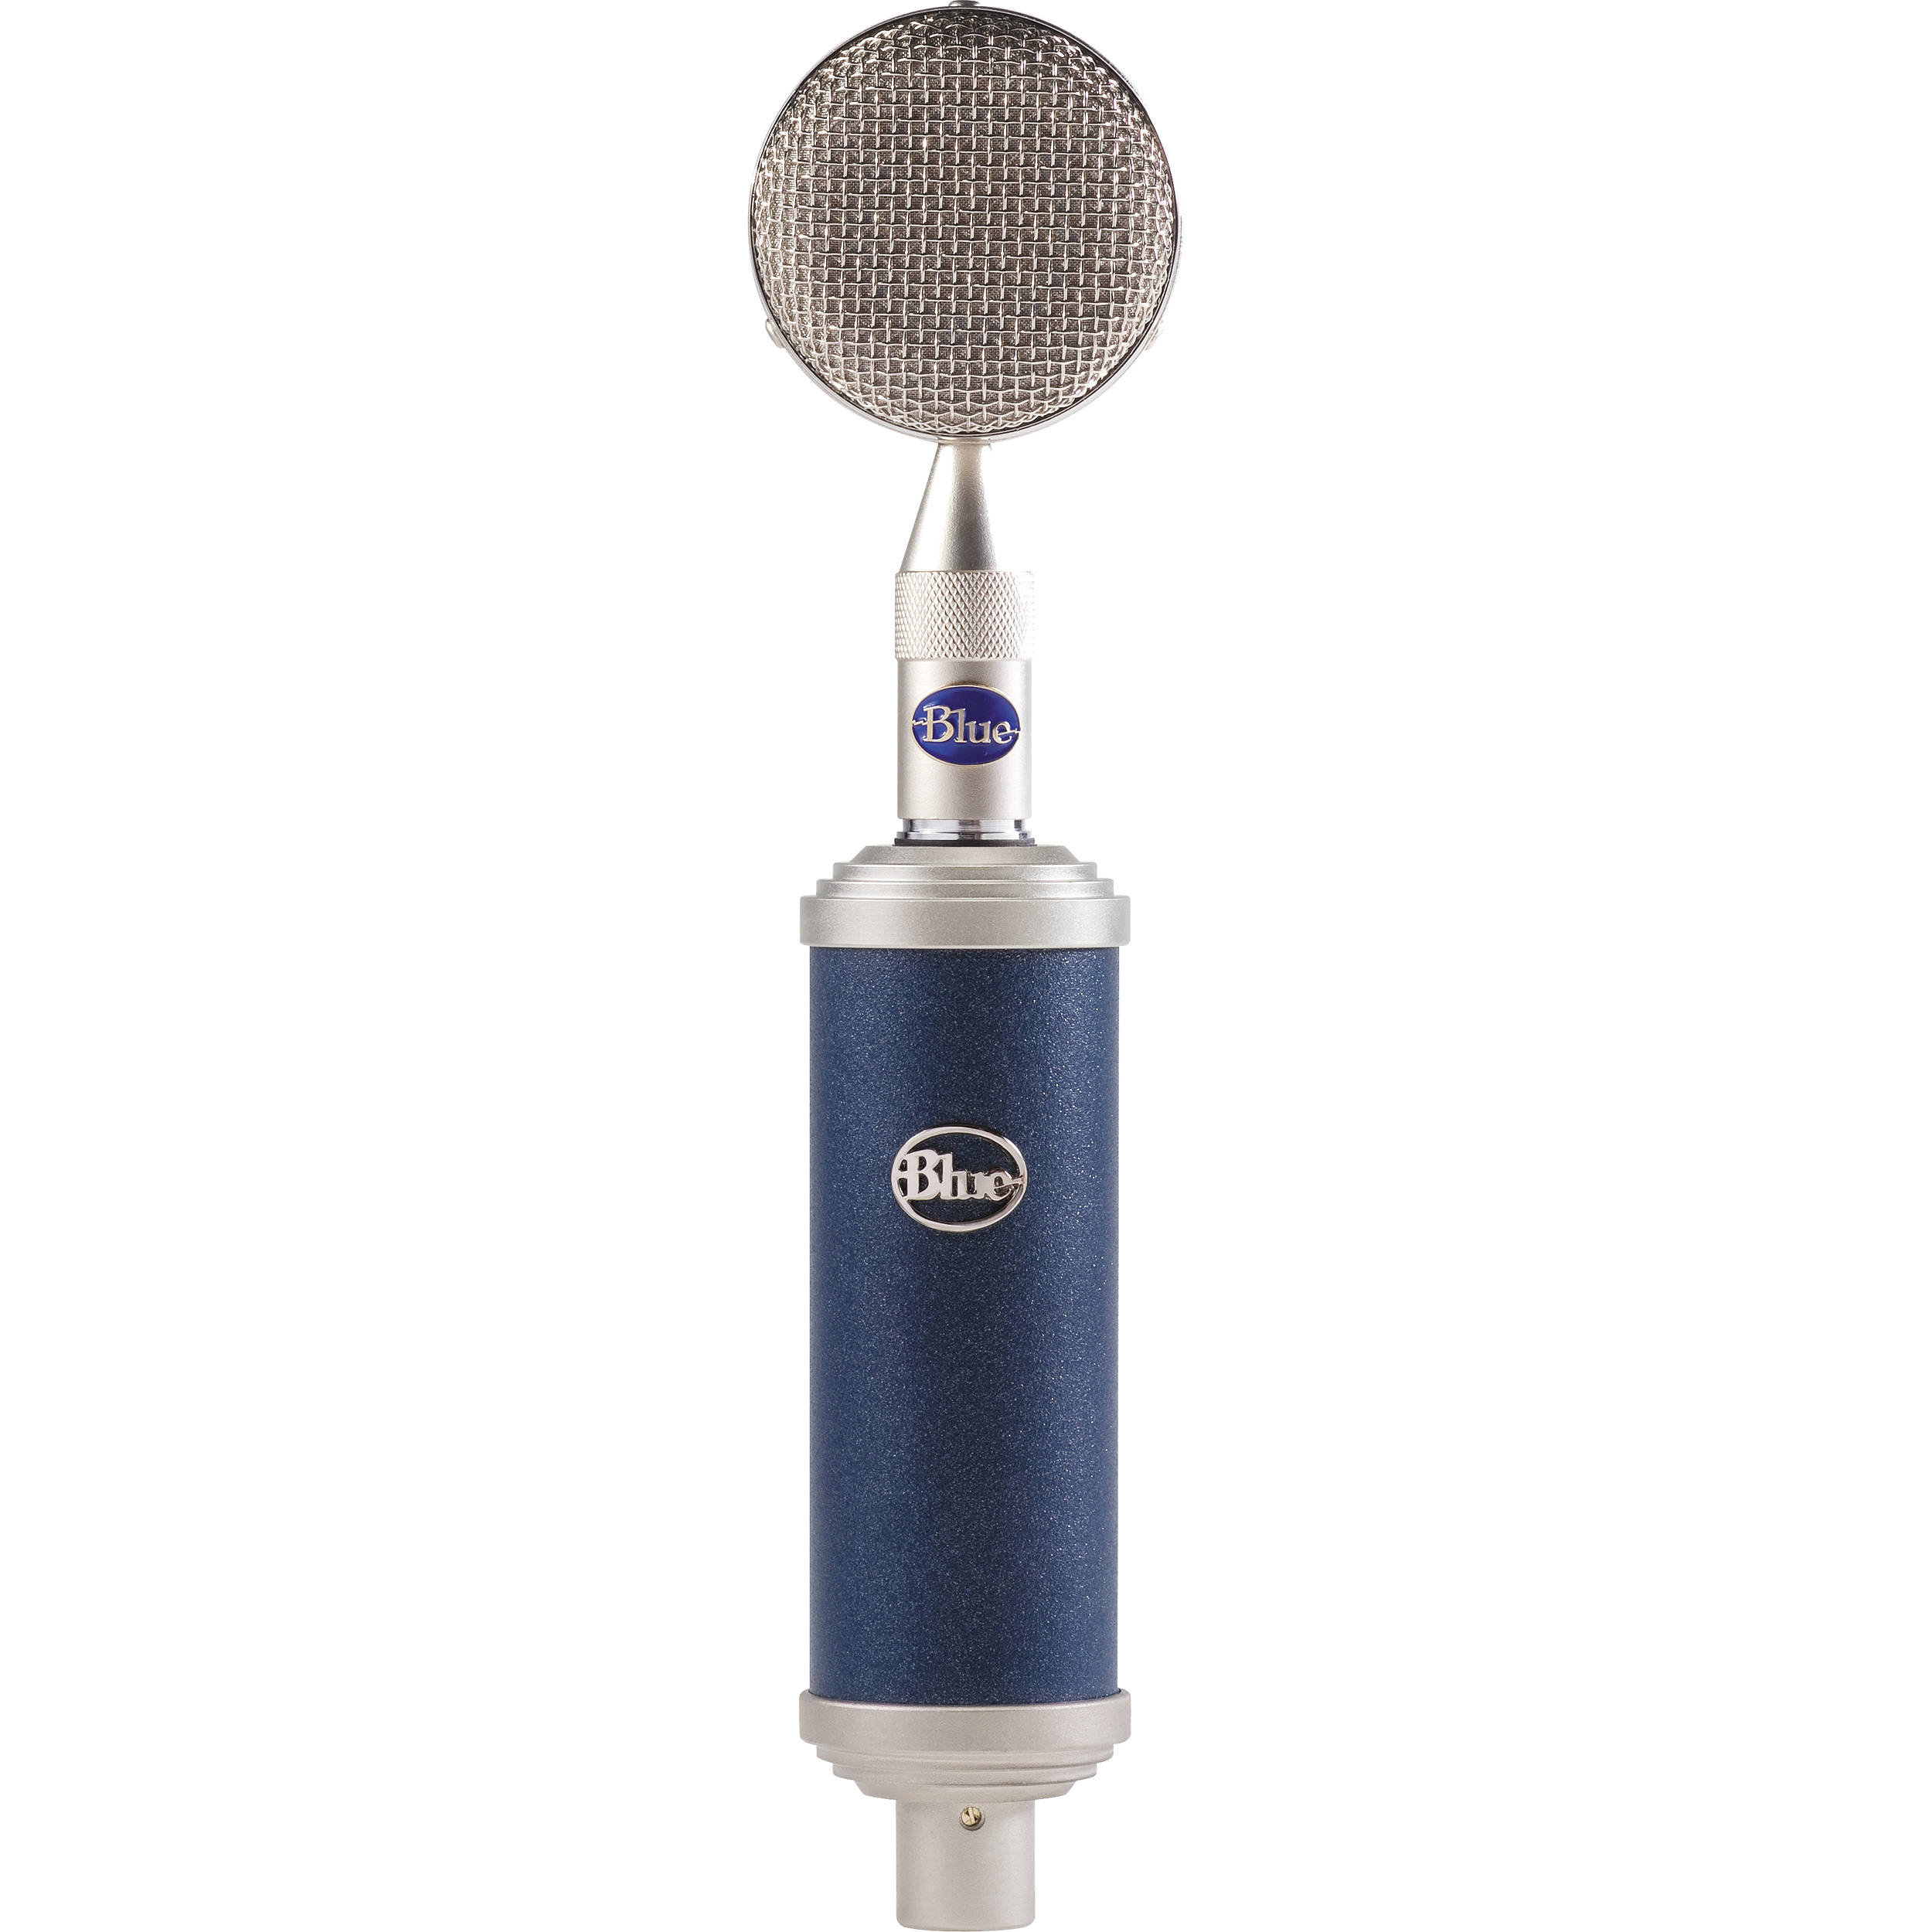 Blue Bottle Rocket Stage 1 Studio Microphone with B8 Capsule